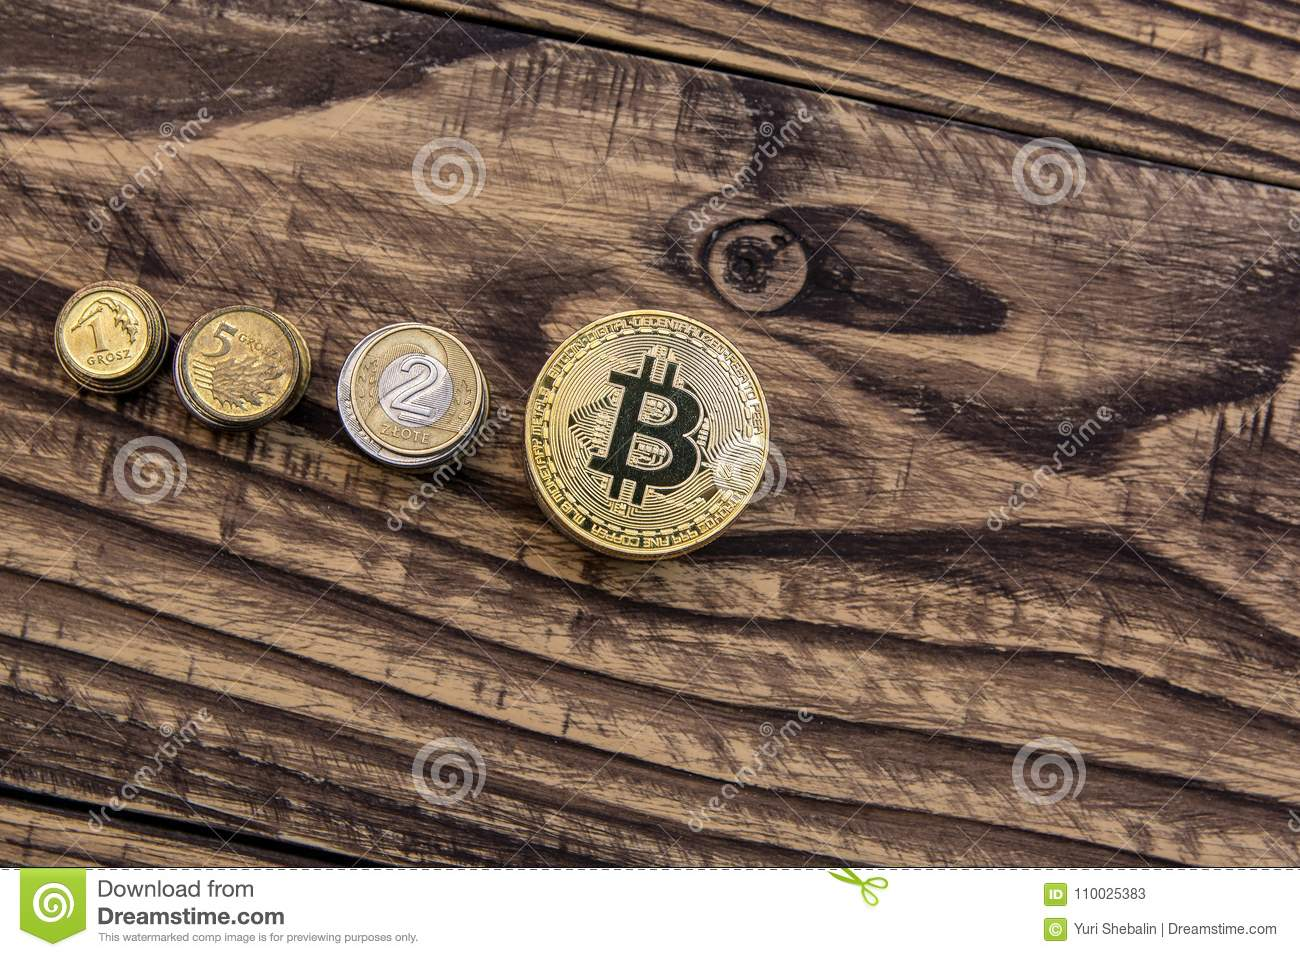 cabin coin cryptocurrency